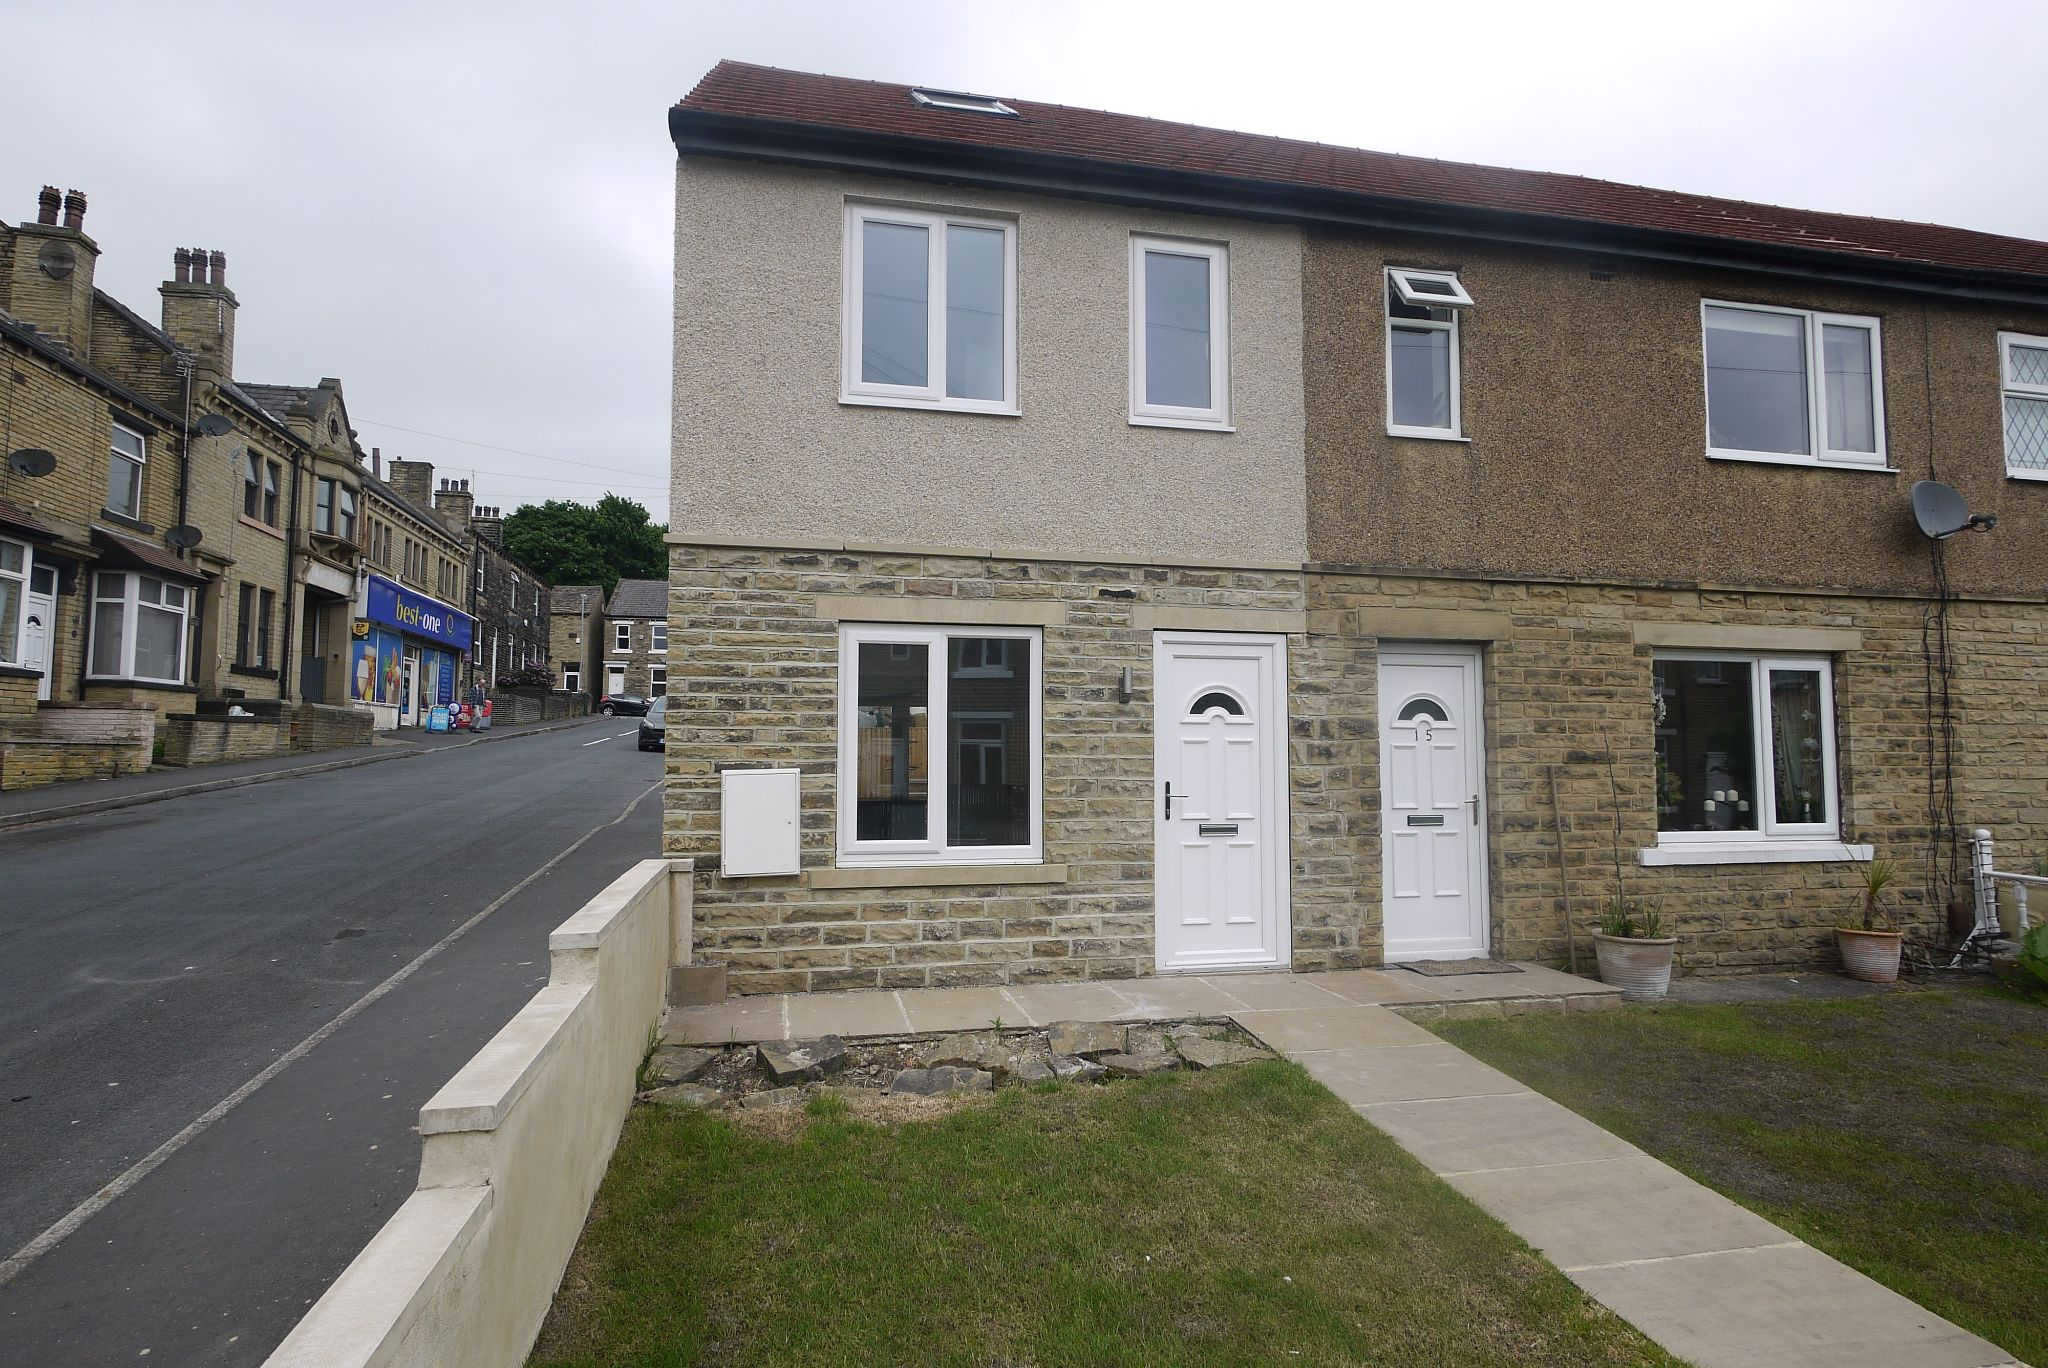 2 bedroom end terraced house For Sale in Brighouse - Photograph 1.